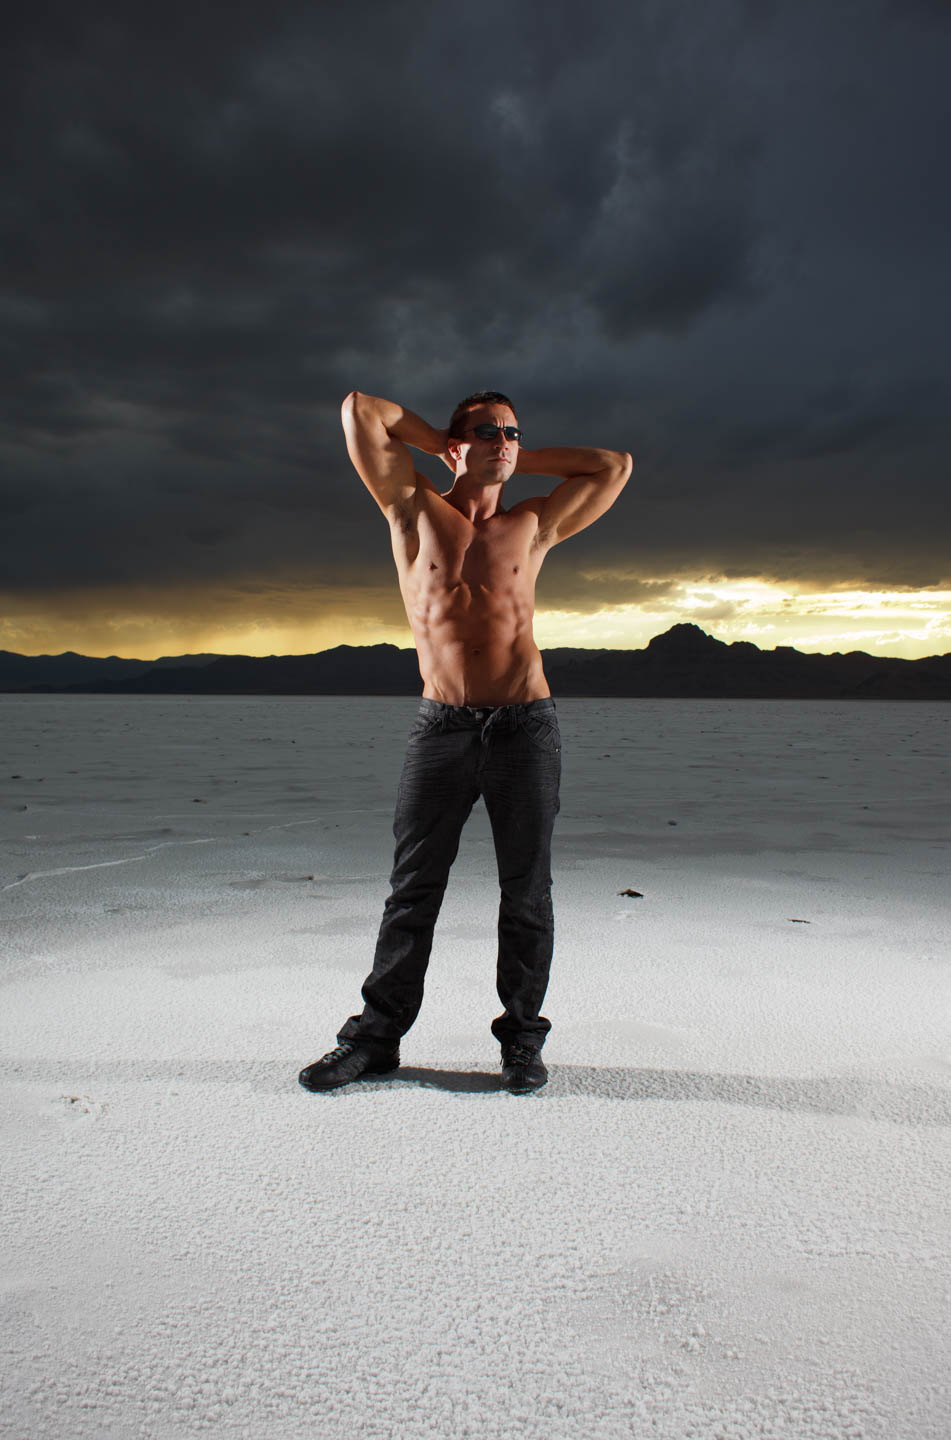 Creative lighting for a muscled male model on the Bonneville Salt Flats